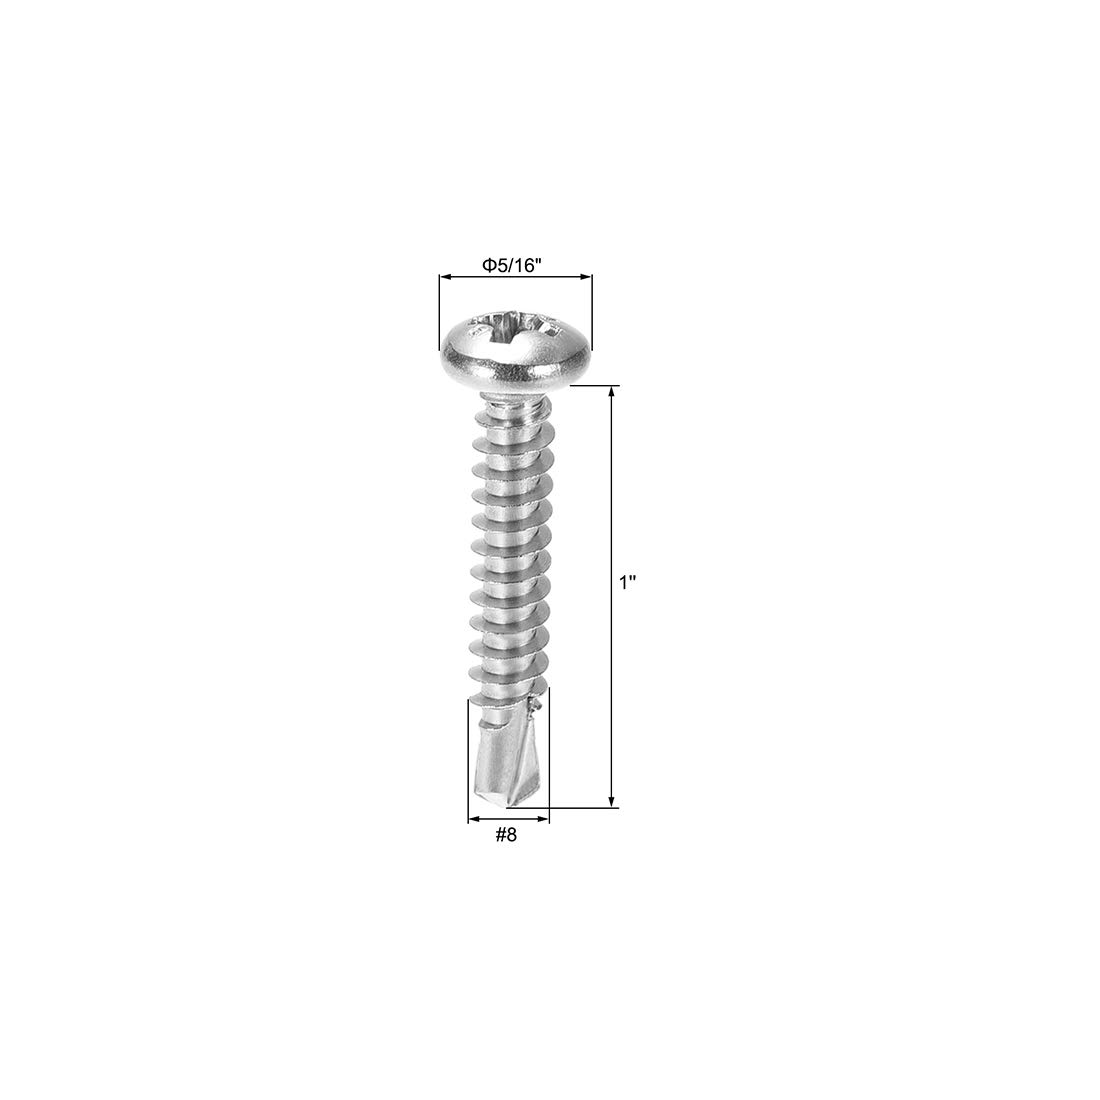 uxcell #8 x 1 Self Tapping Screws 410 Stainless Steel Phillips Pan Head Self Drilling Screws 60pcs